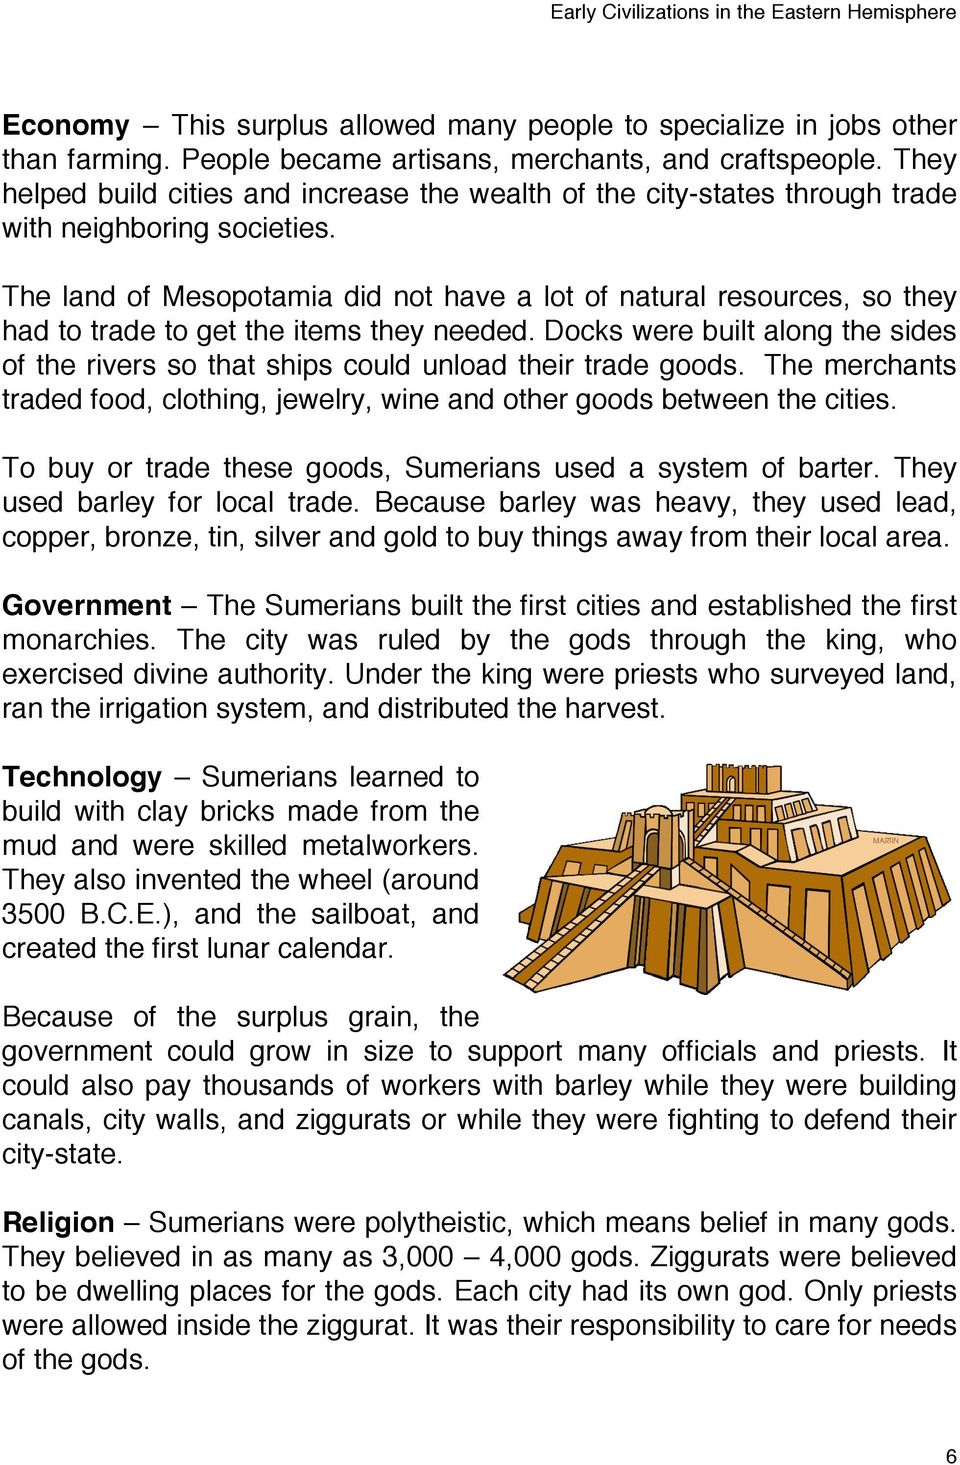 mesopotamia technology inventions